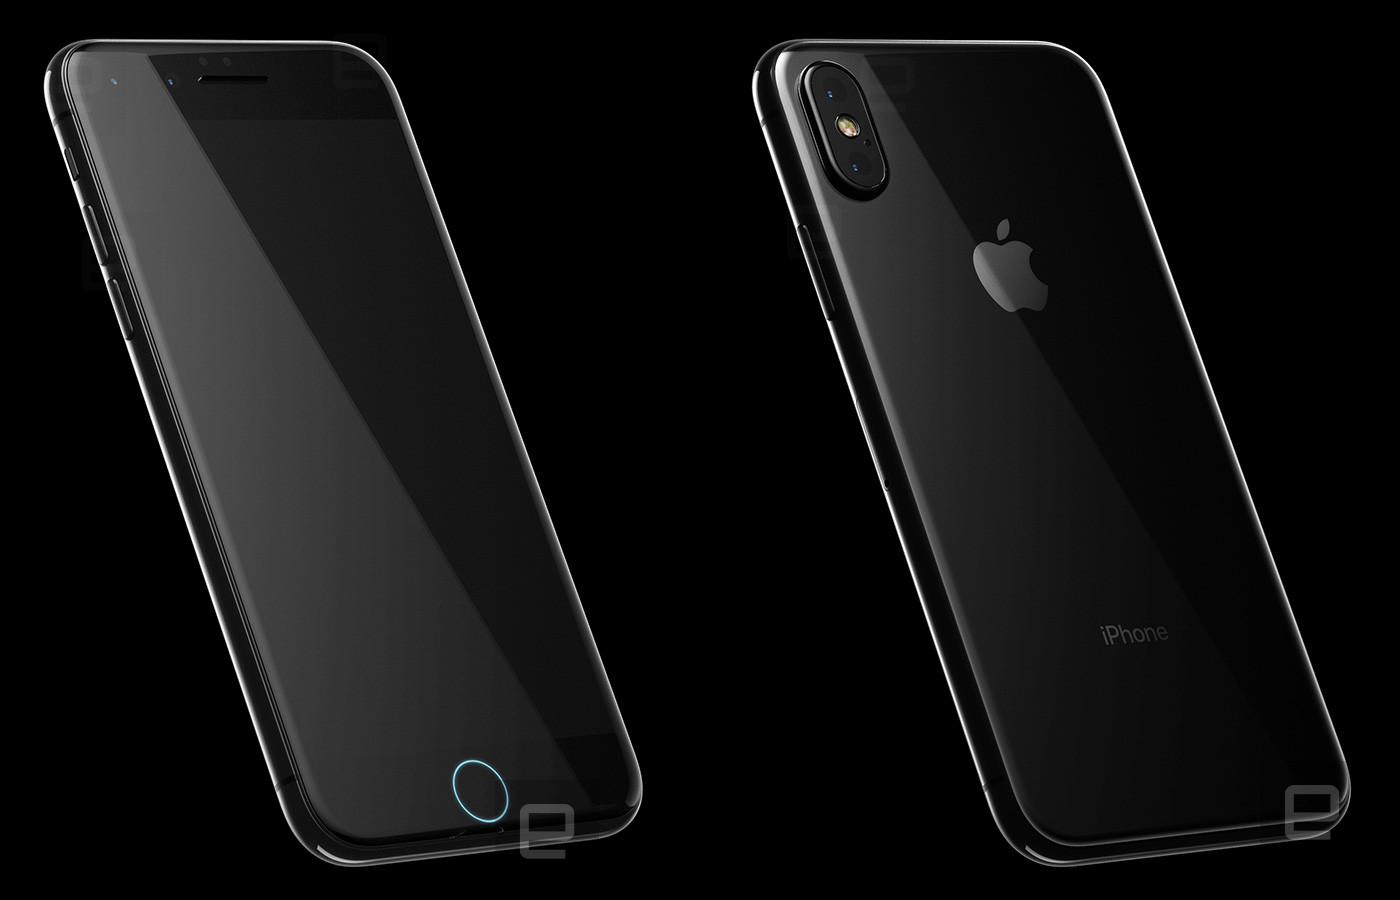 1494942322_iphone-8-front-back.jpg